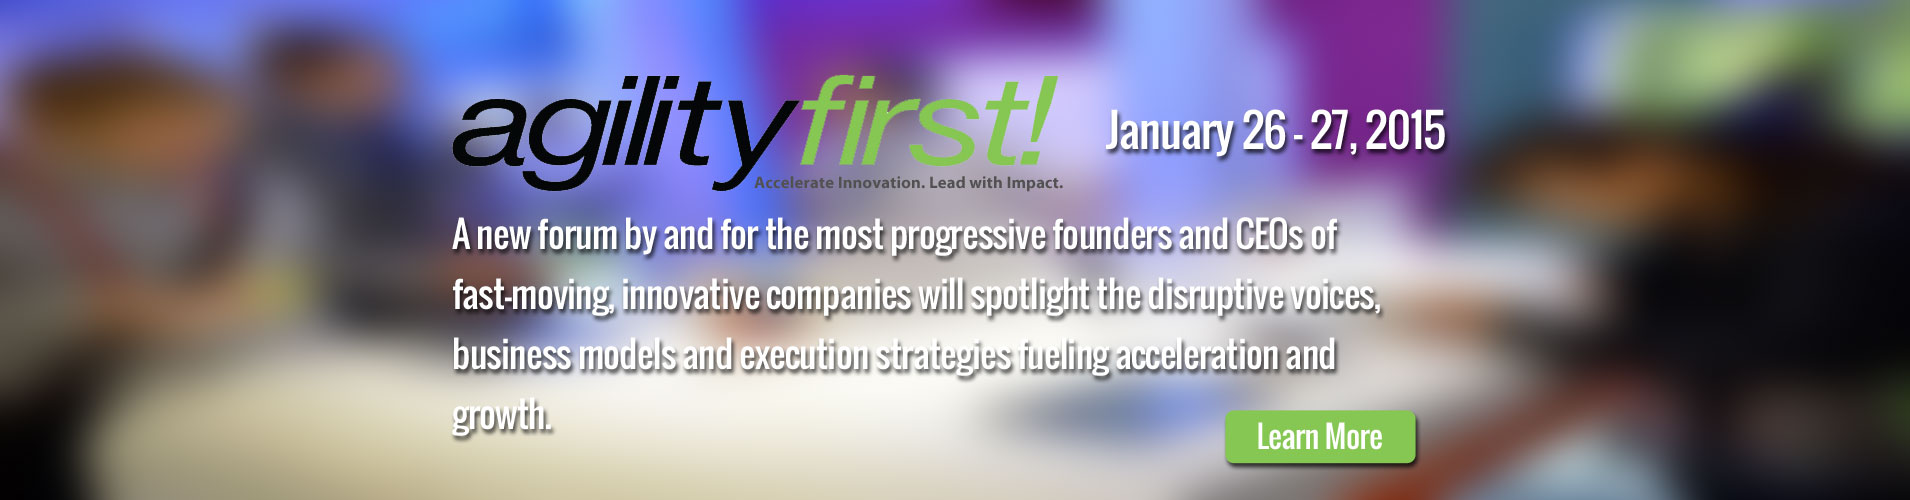 Agility First! forum. Jan 26-27 2015